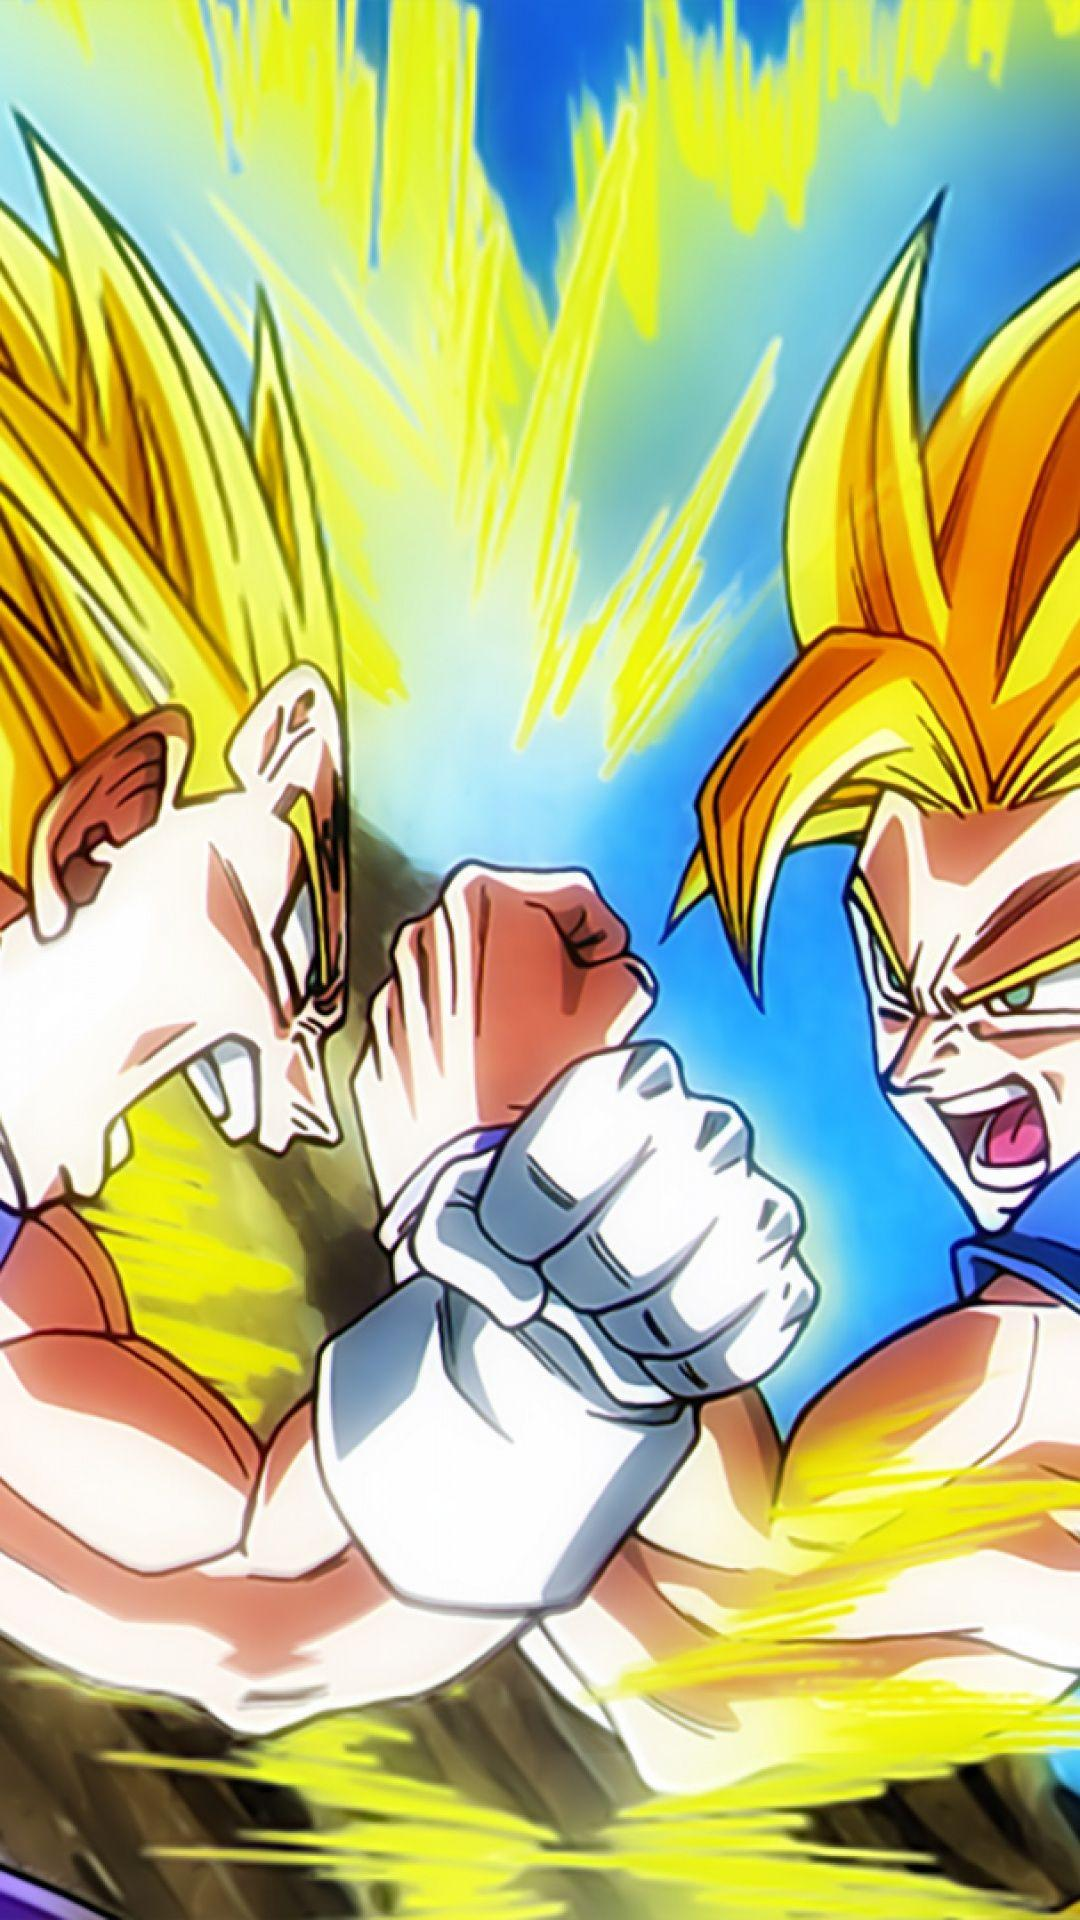 Discover pc & iphone backgrounds with you favorite dragon ball character. Vegeta Dbz Iphone Wallpapers - Wallpaper Cave